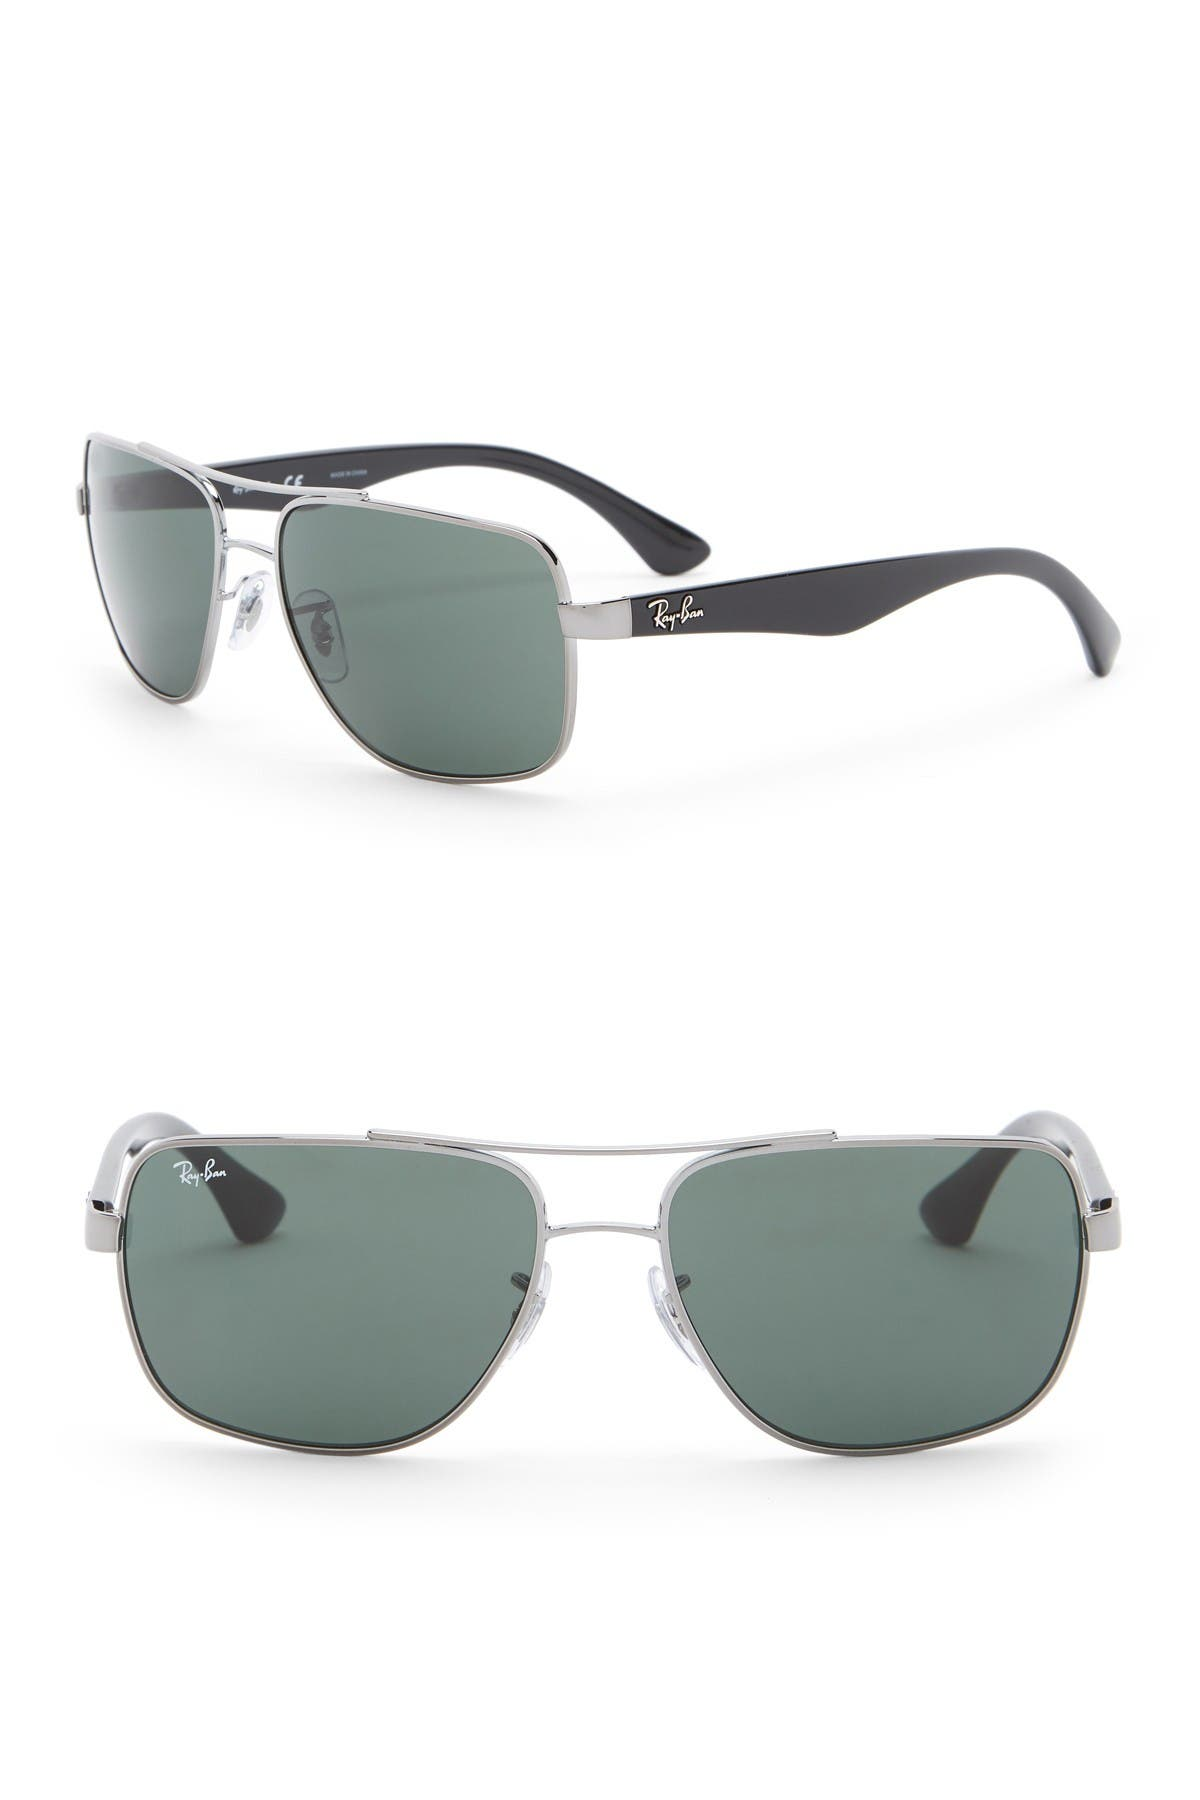 Image of Ray-Ban 60mm Navigator Sunglasses